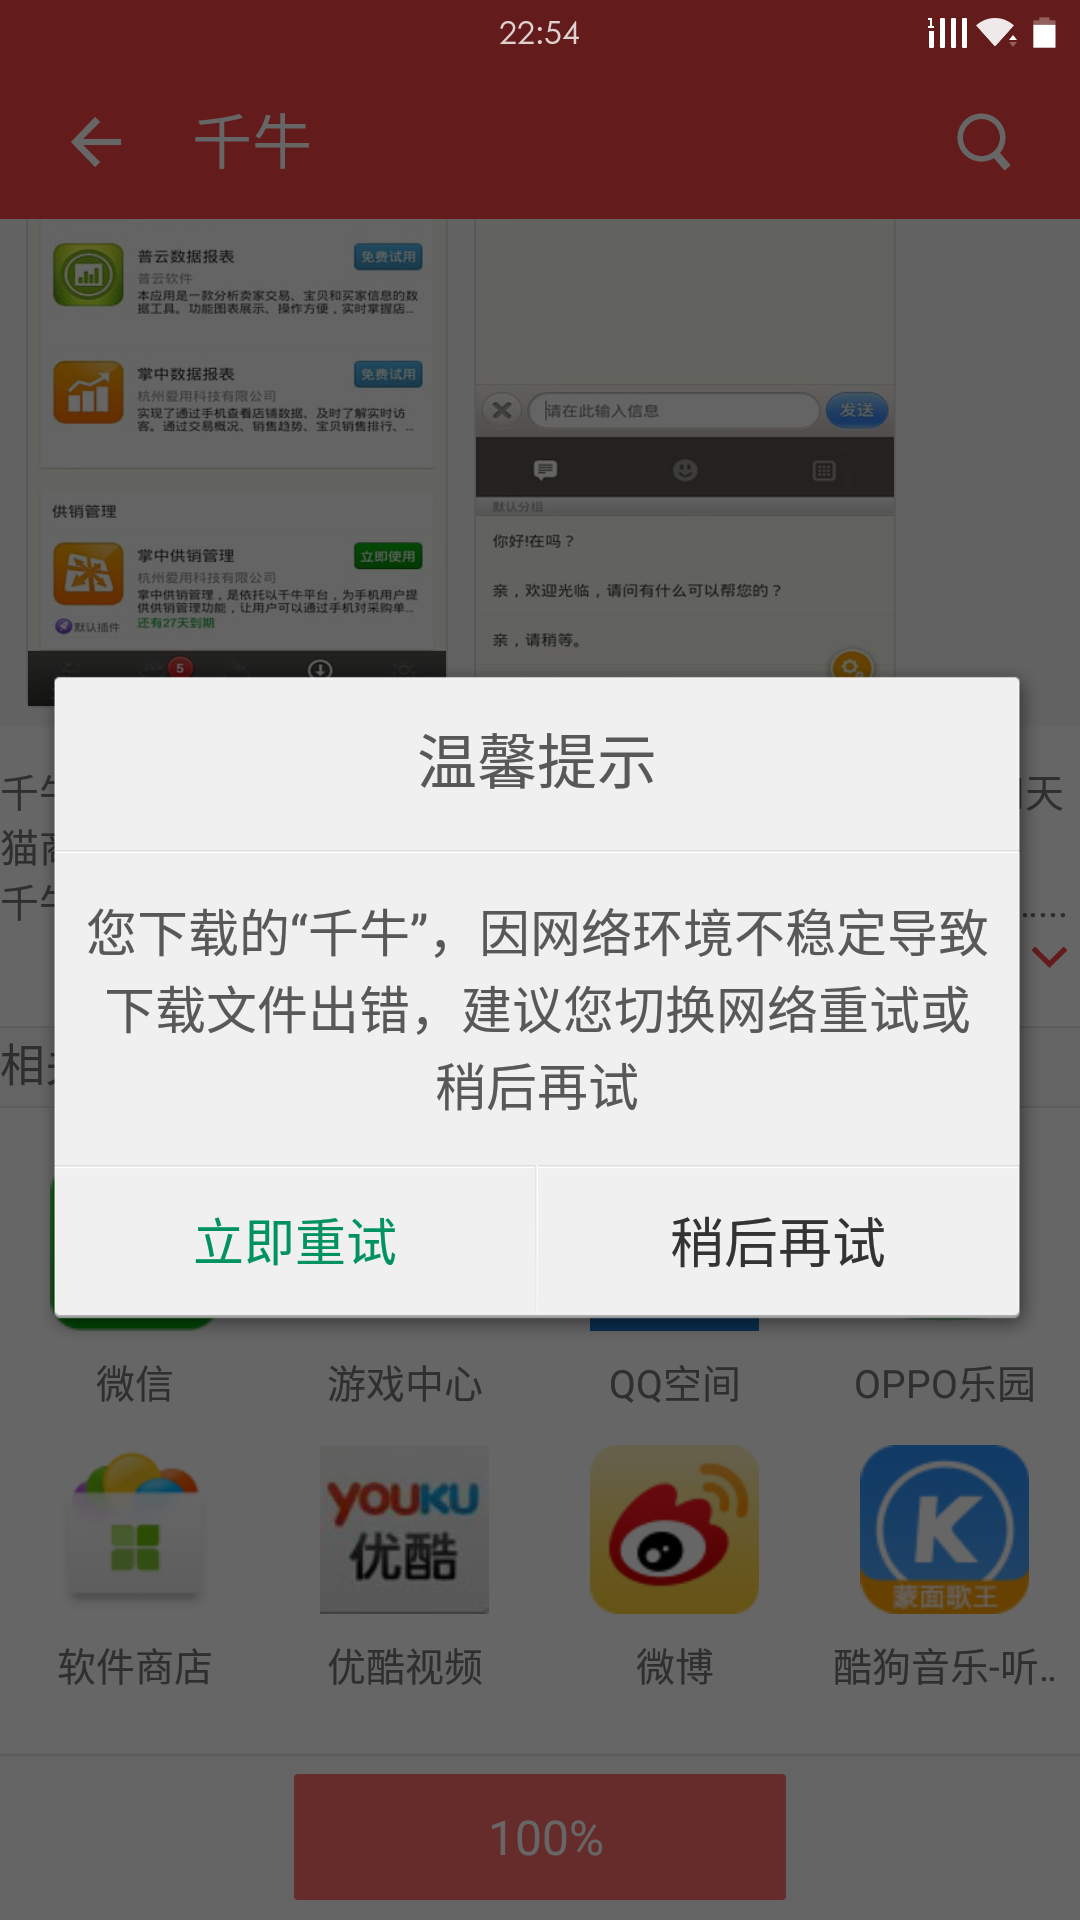 Screenshot_2015-09-10-22-54-48.png